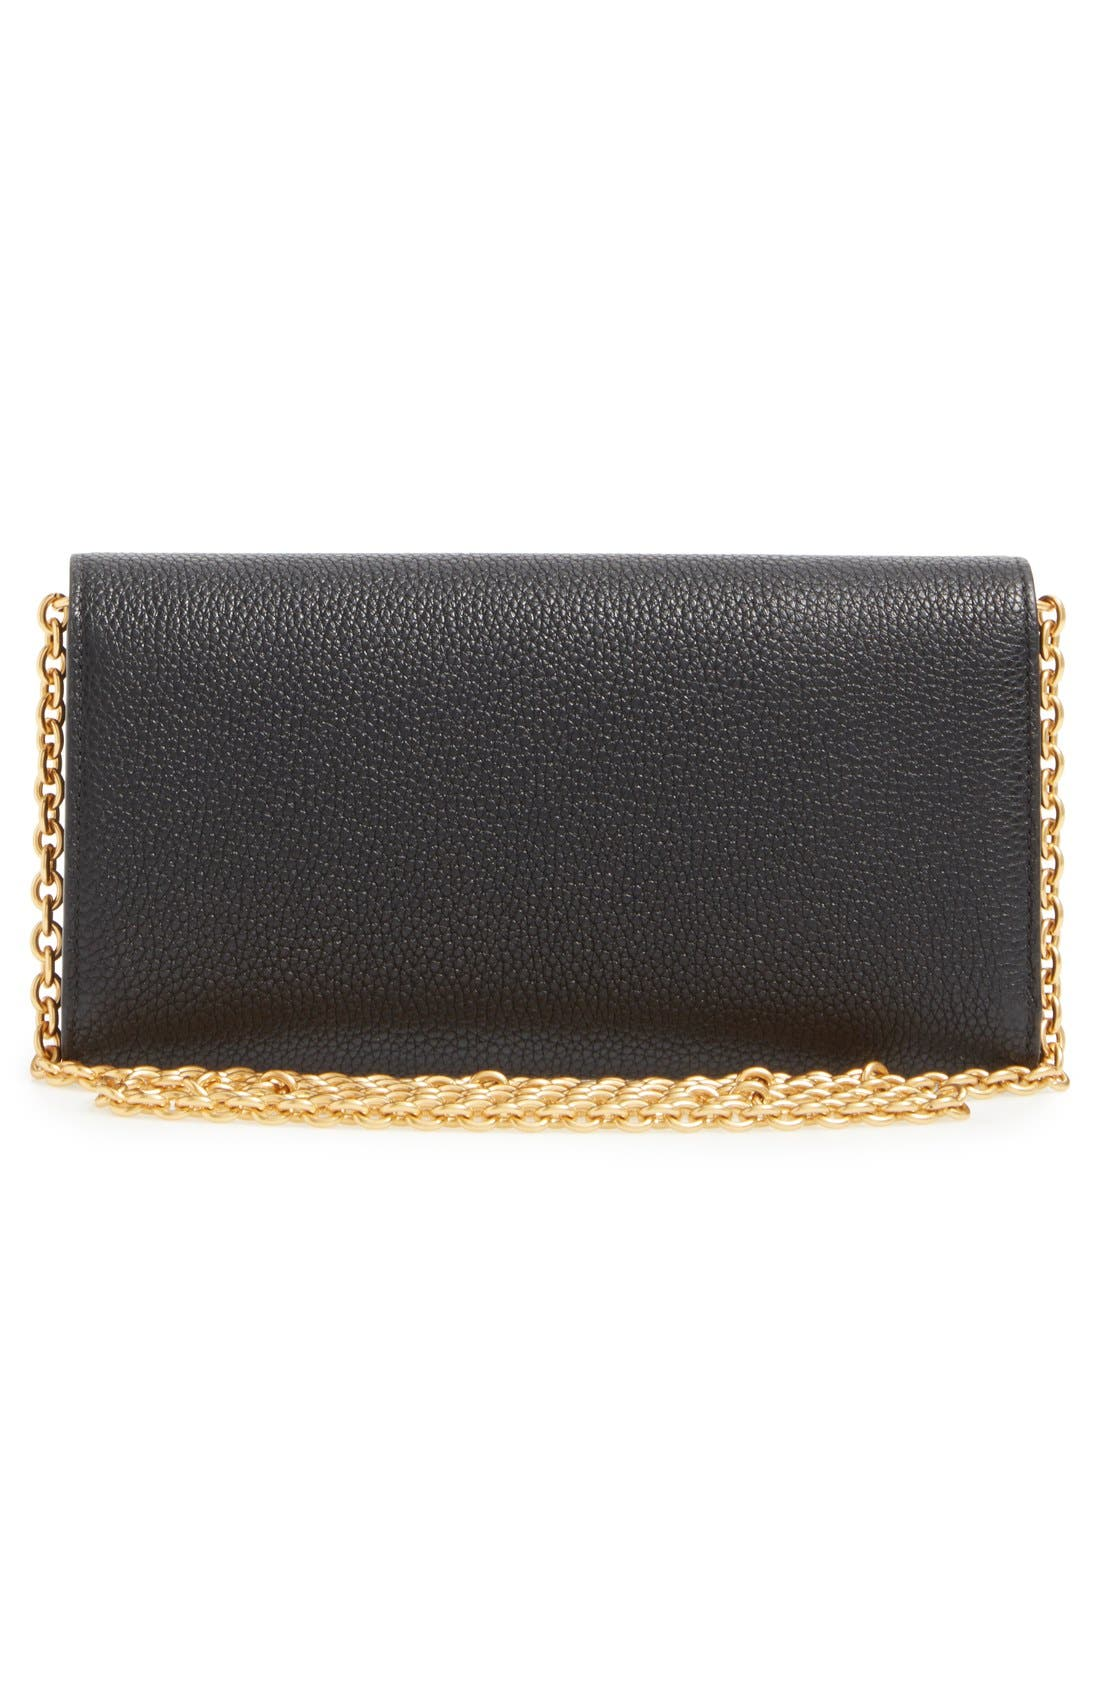 'Continental - Classic' Convertible Leather Clutch,                             Alternate thumbnail 5, color,